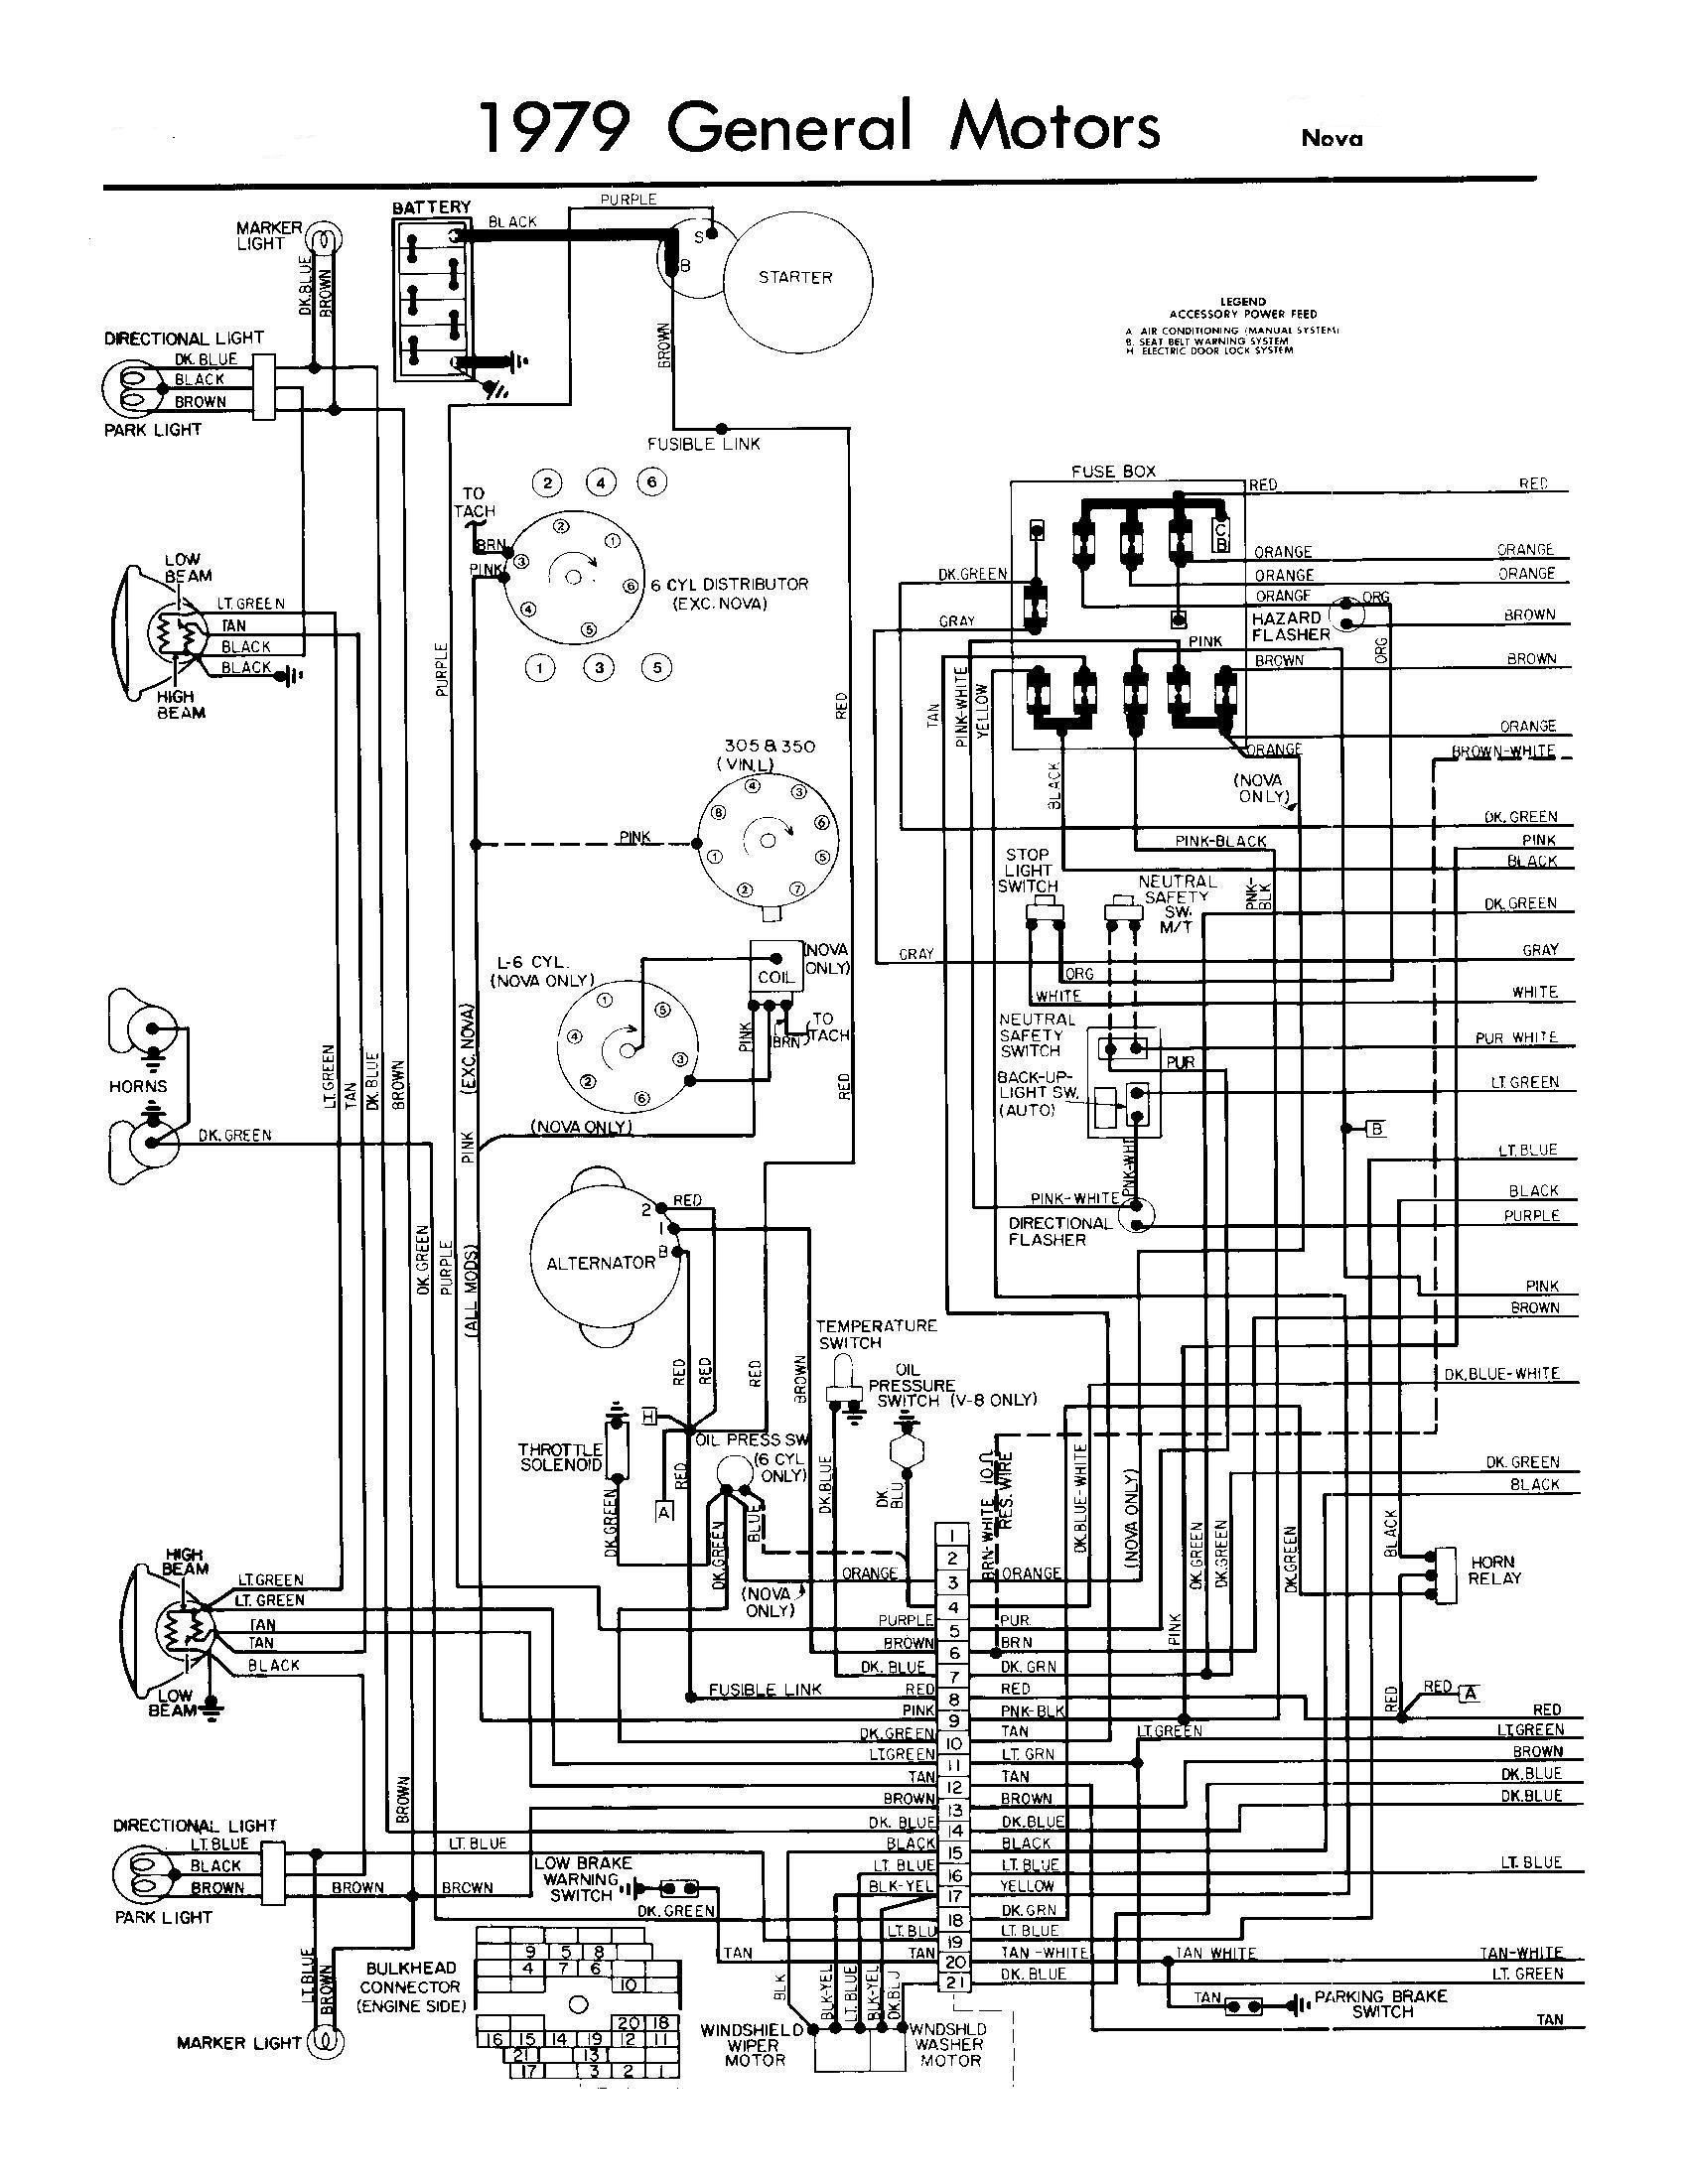 af30d80785d45bfeba8f1db47439920a 79 chevy truck wiring diagram 82 chevy truck wiring diagram 1978 GMC Sierra at gsmportal.co